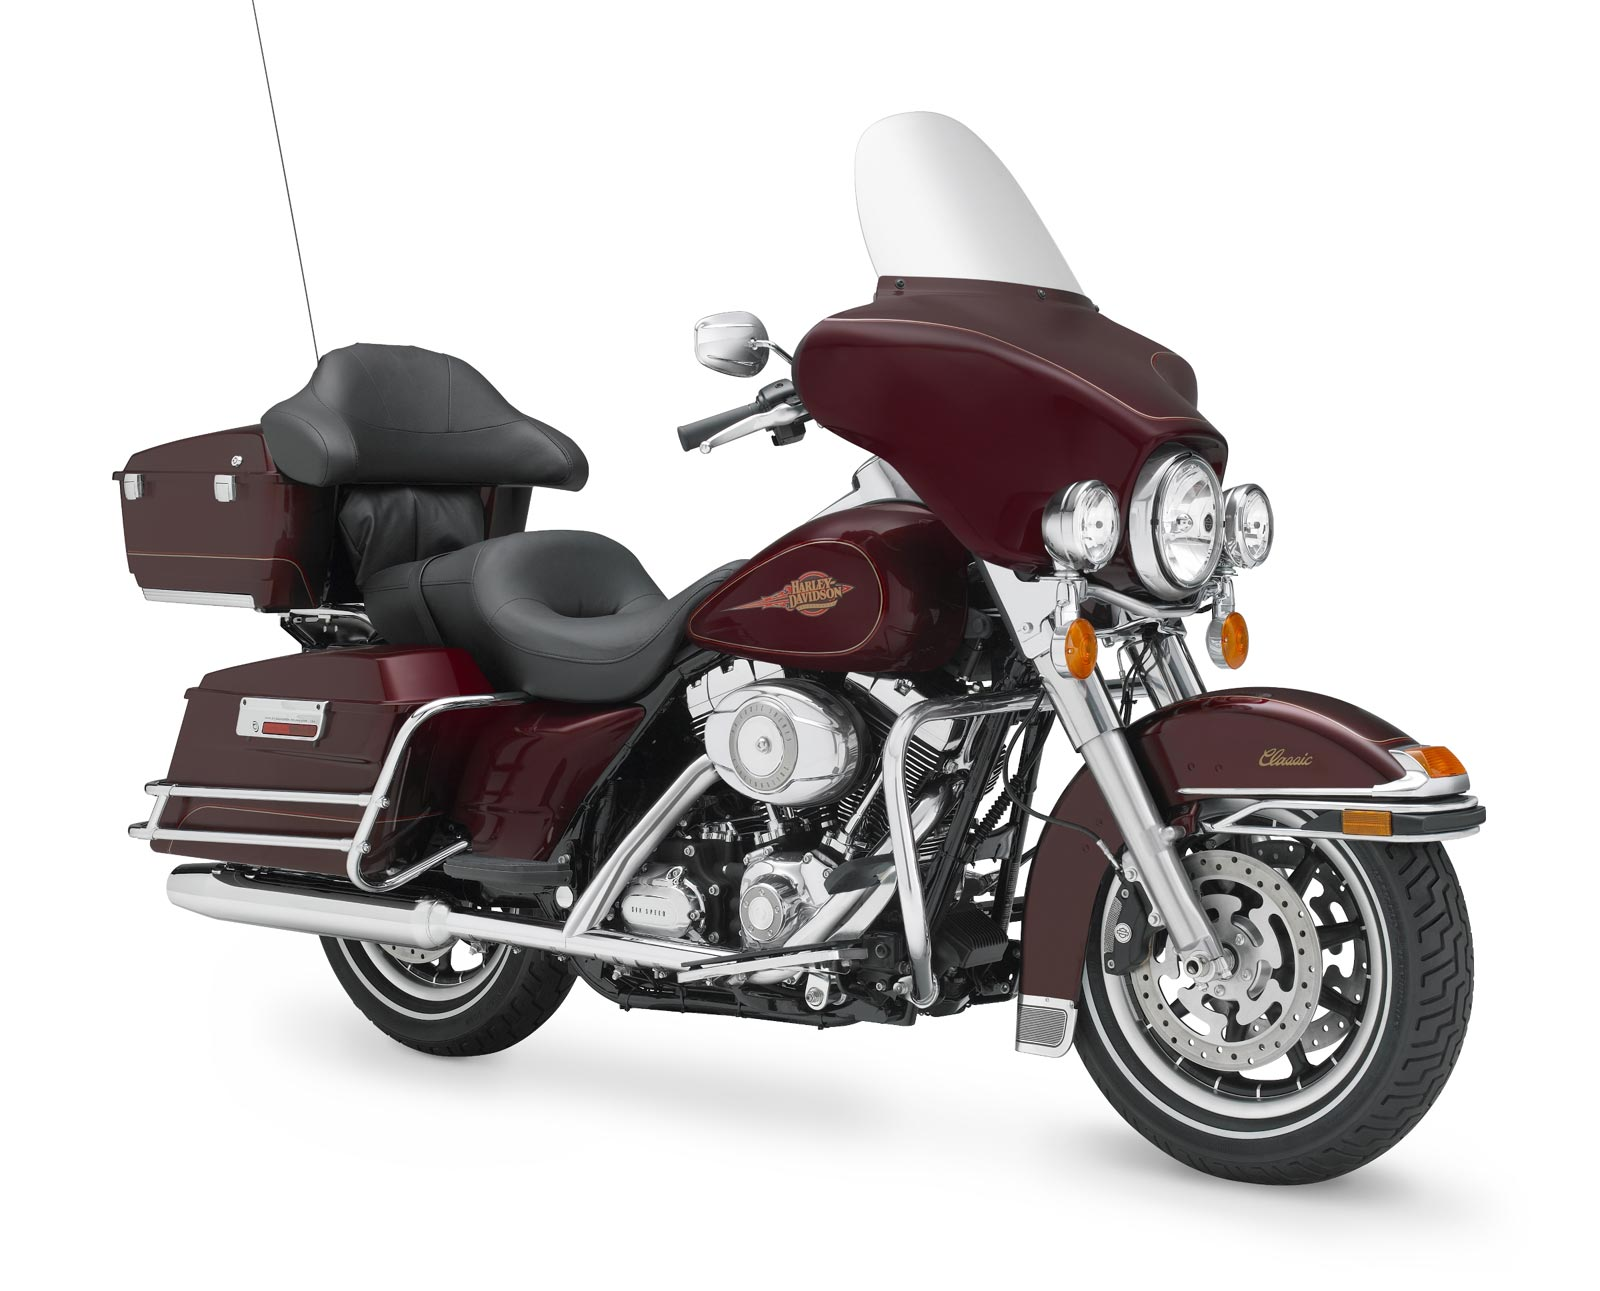 Harley-Davidson FLHTC Electra Glide Classic 2008 #3